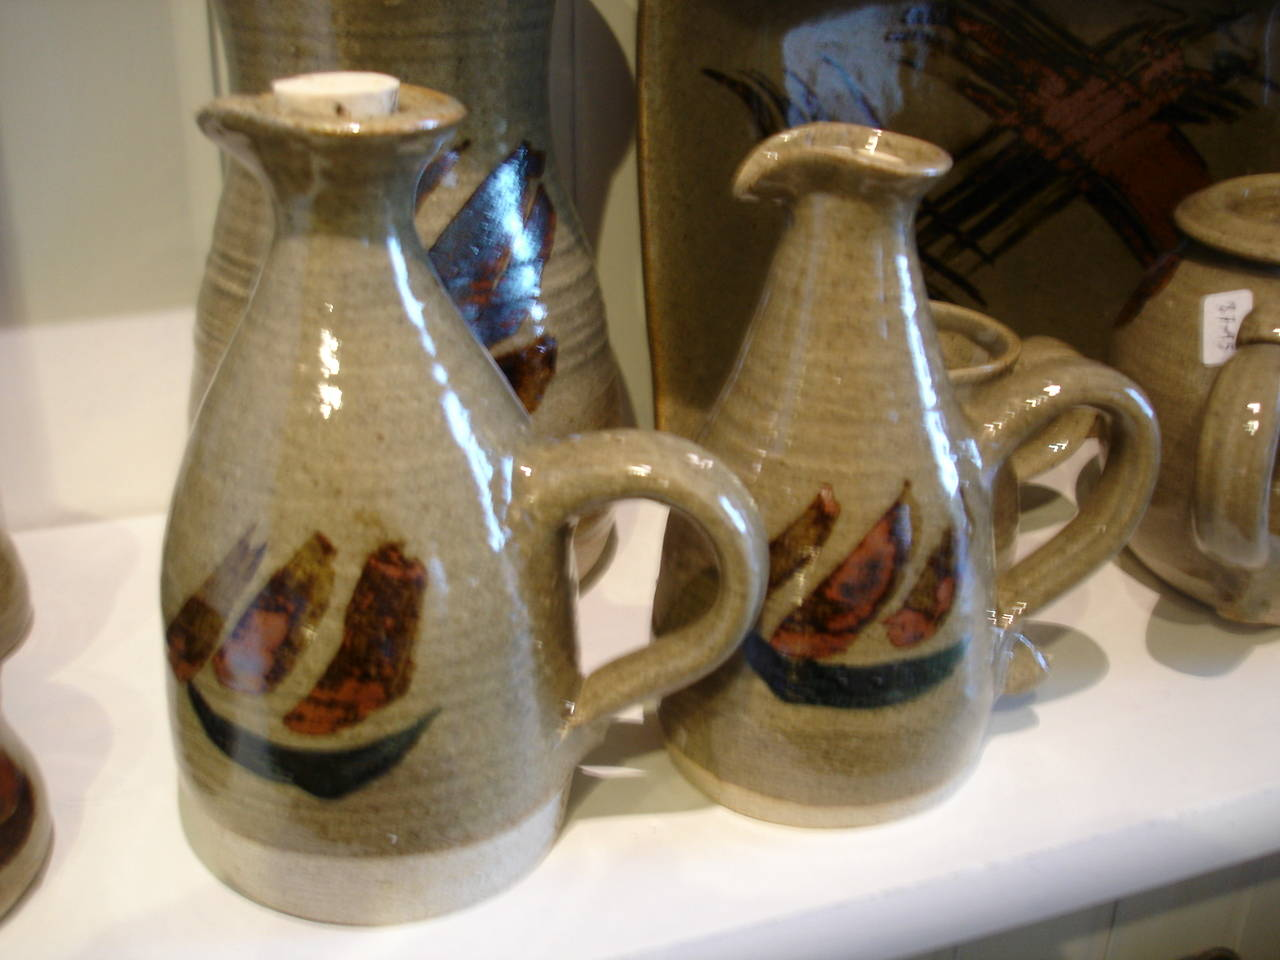 alan-gaillard-irish-pottery-connemara-stoneware-group-oil-and-vinegar-bottles-hooker-range